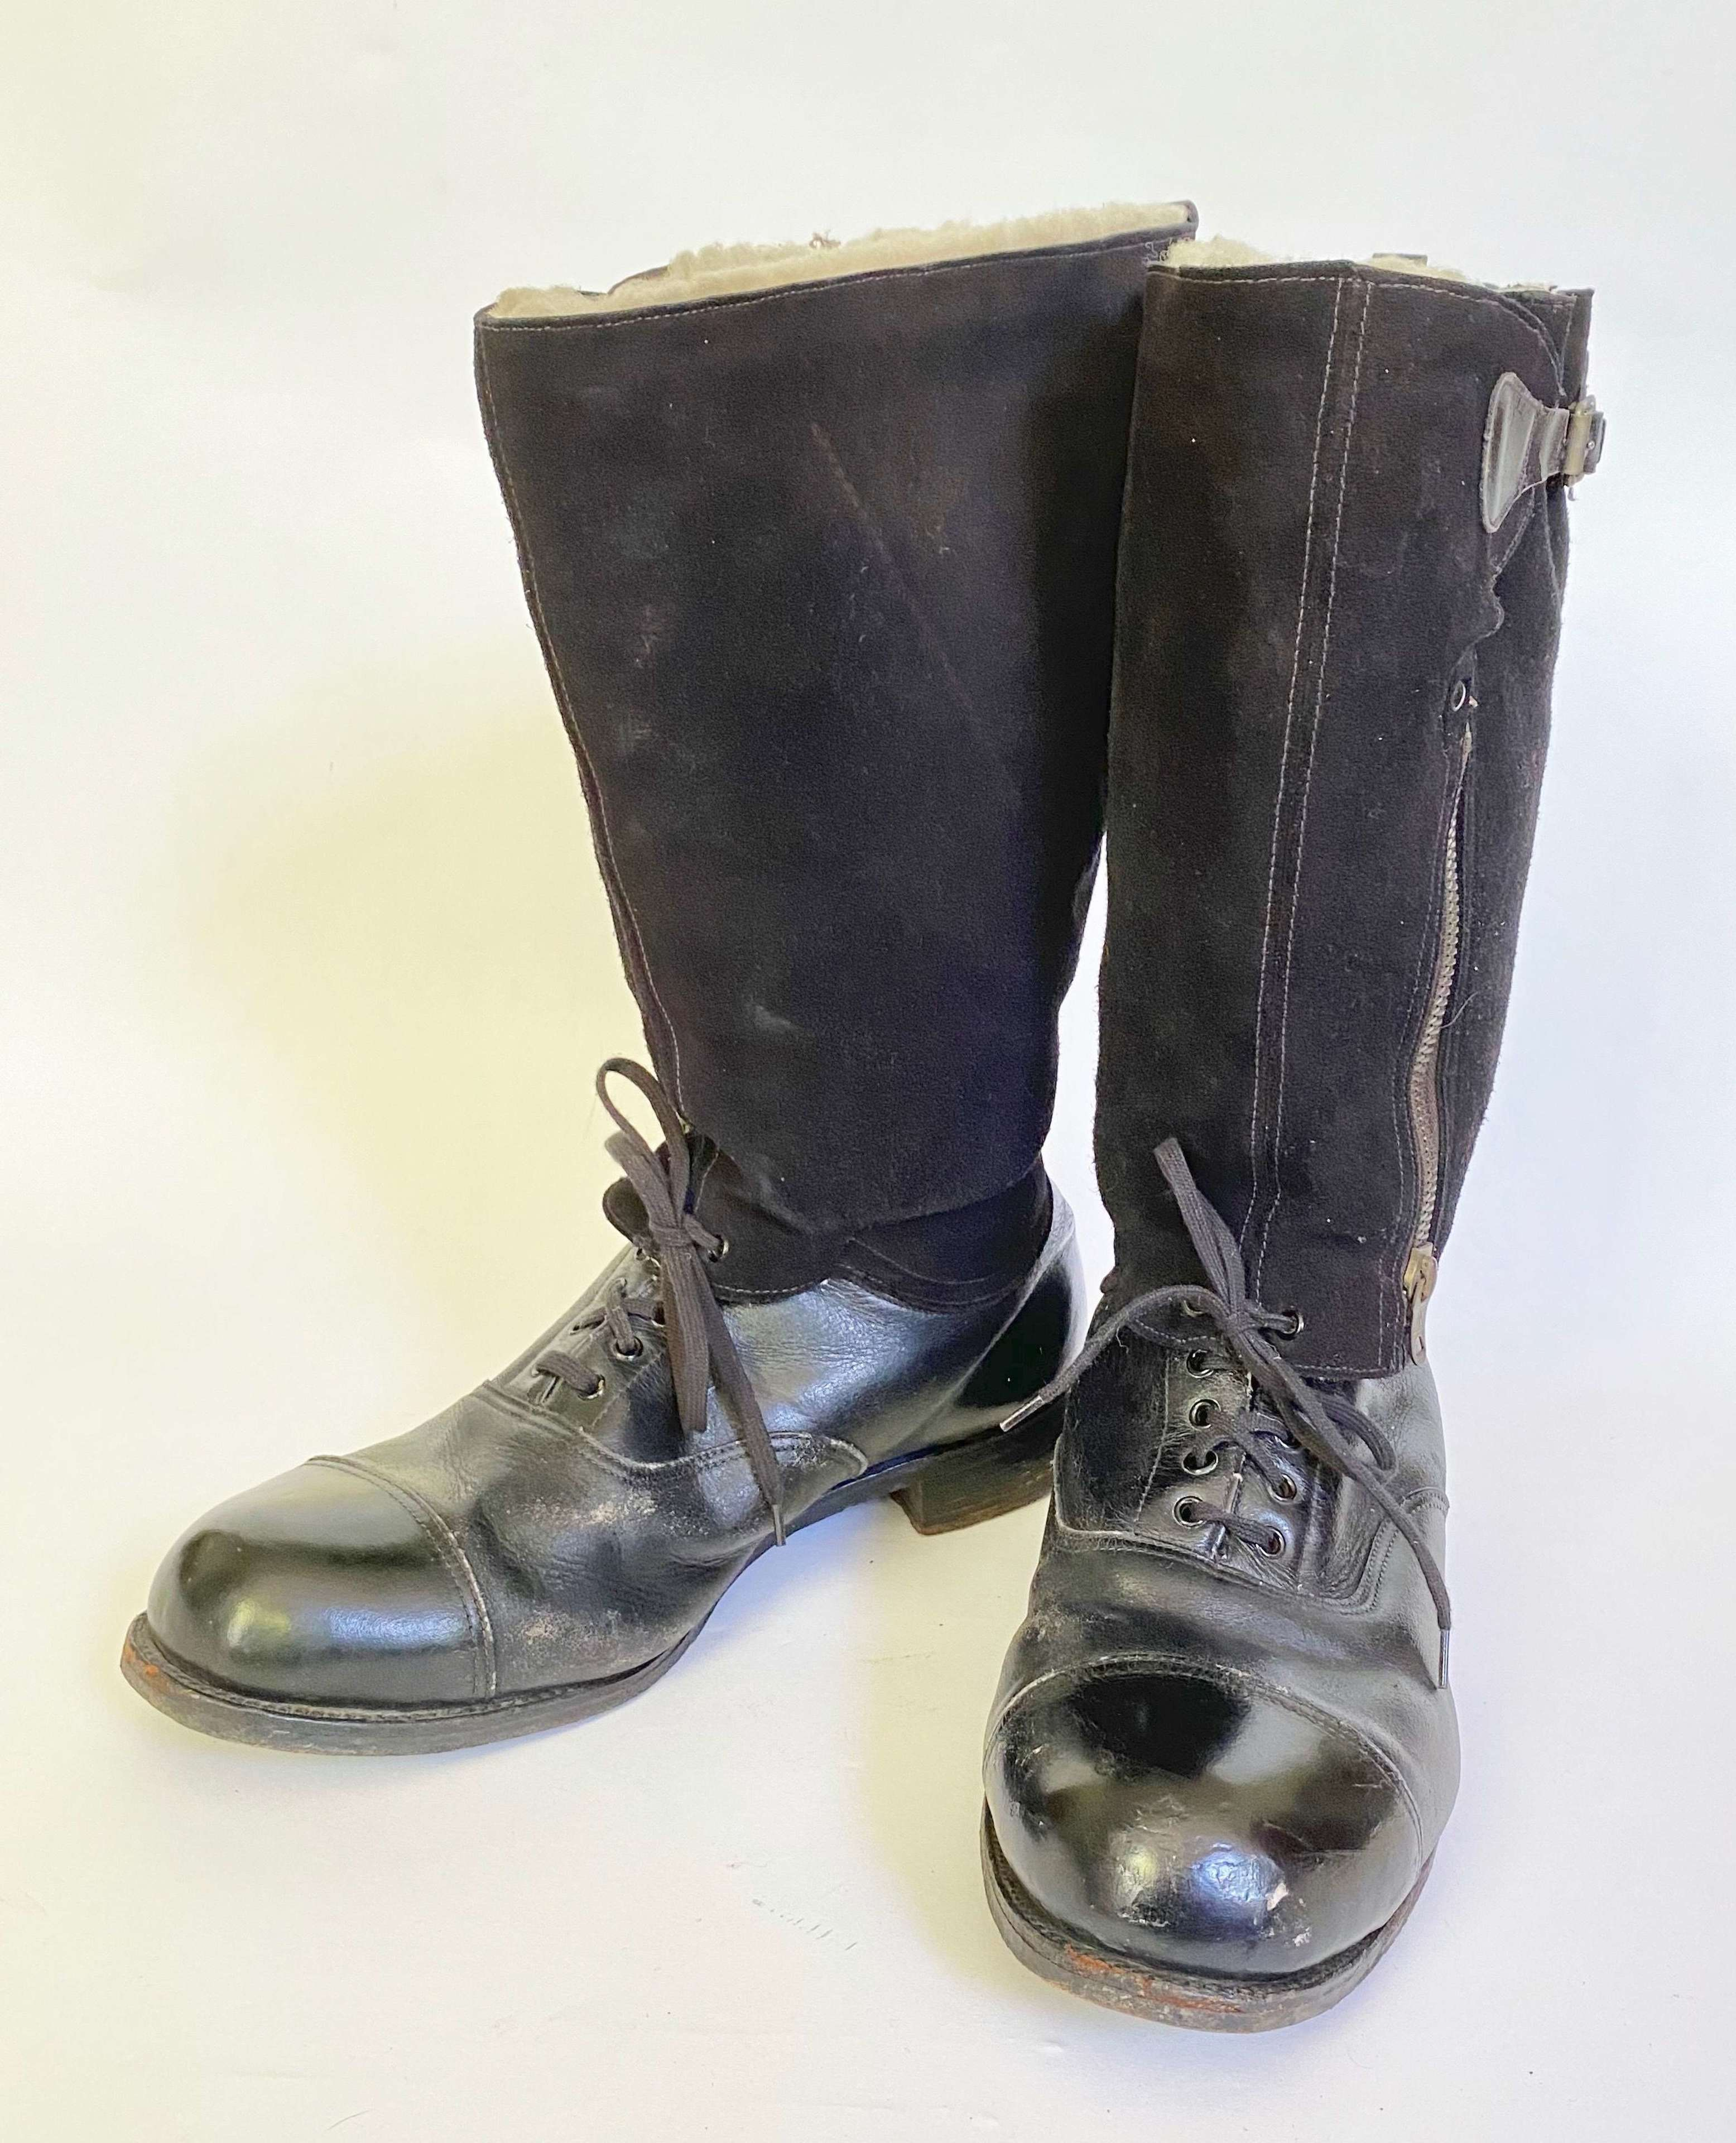 WW2 RAF Aircrew 1943 Pattern Escape Boots Large Size 14.